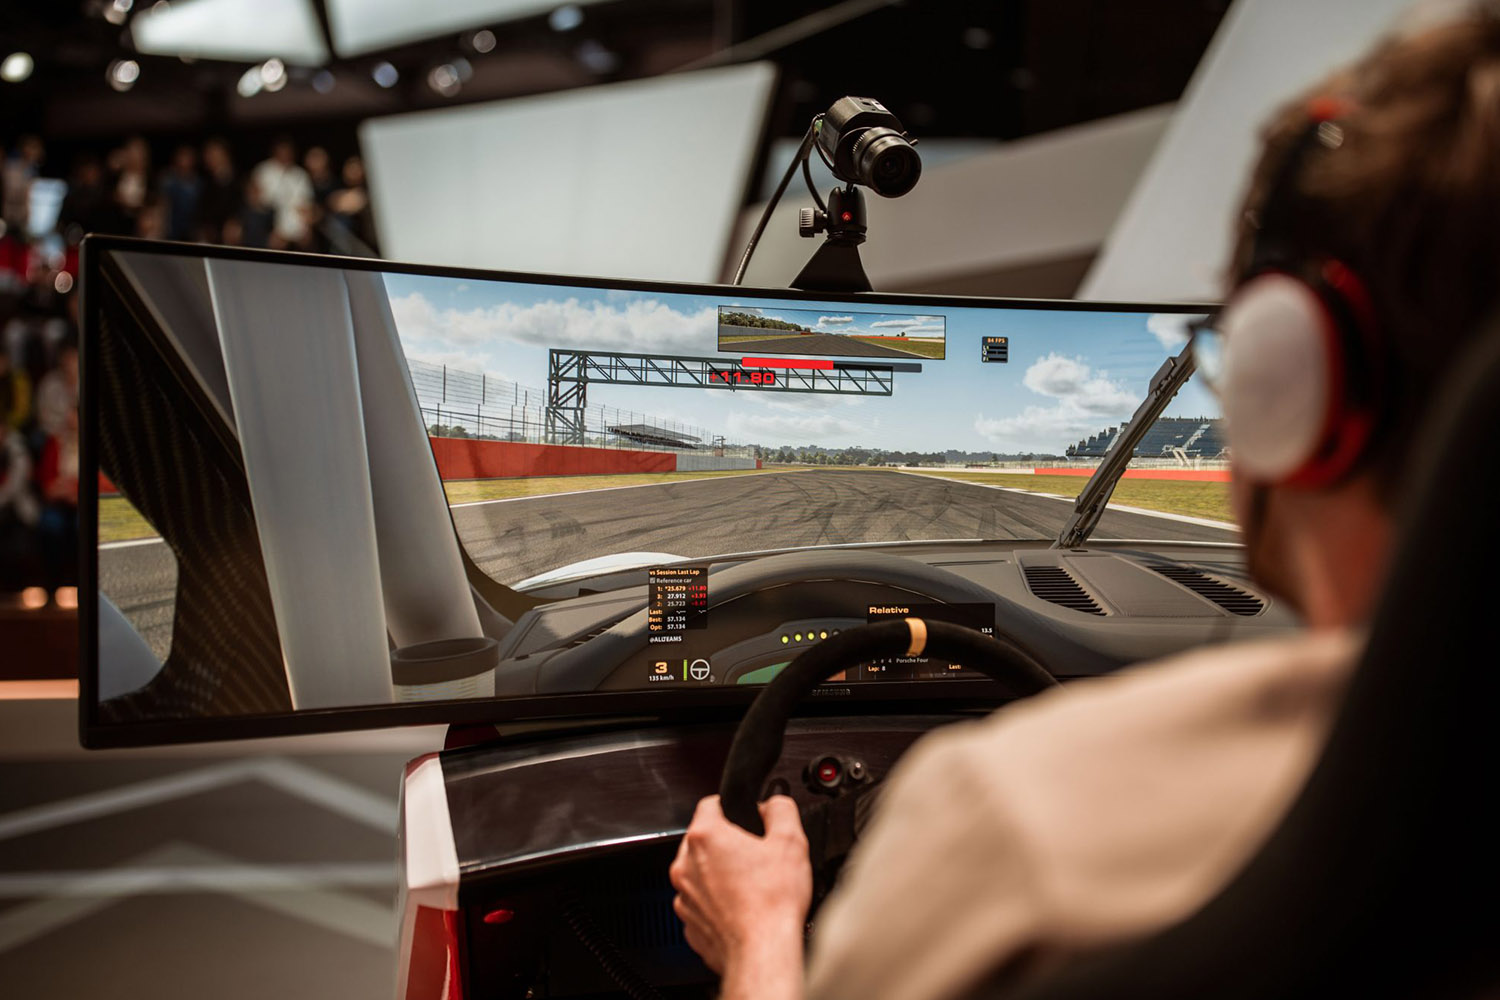 Race on your pc with the world's premier racing simulation